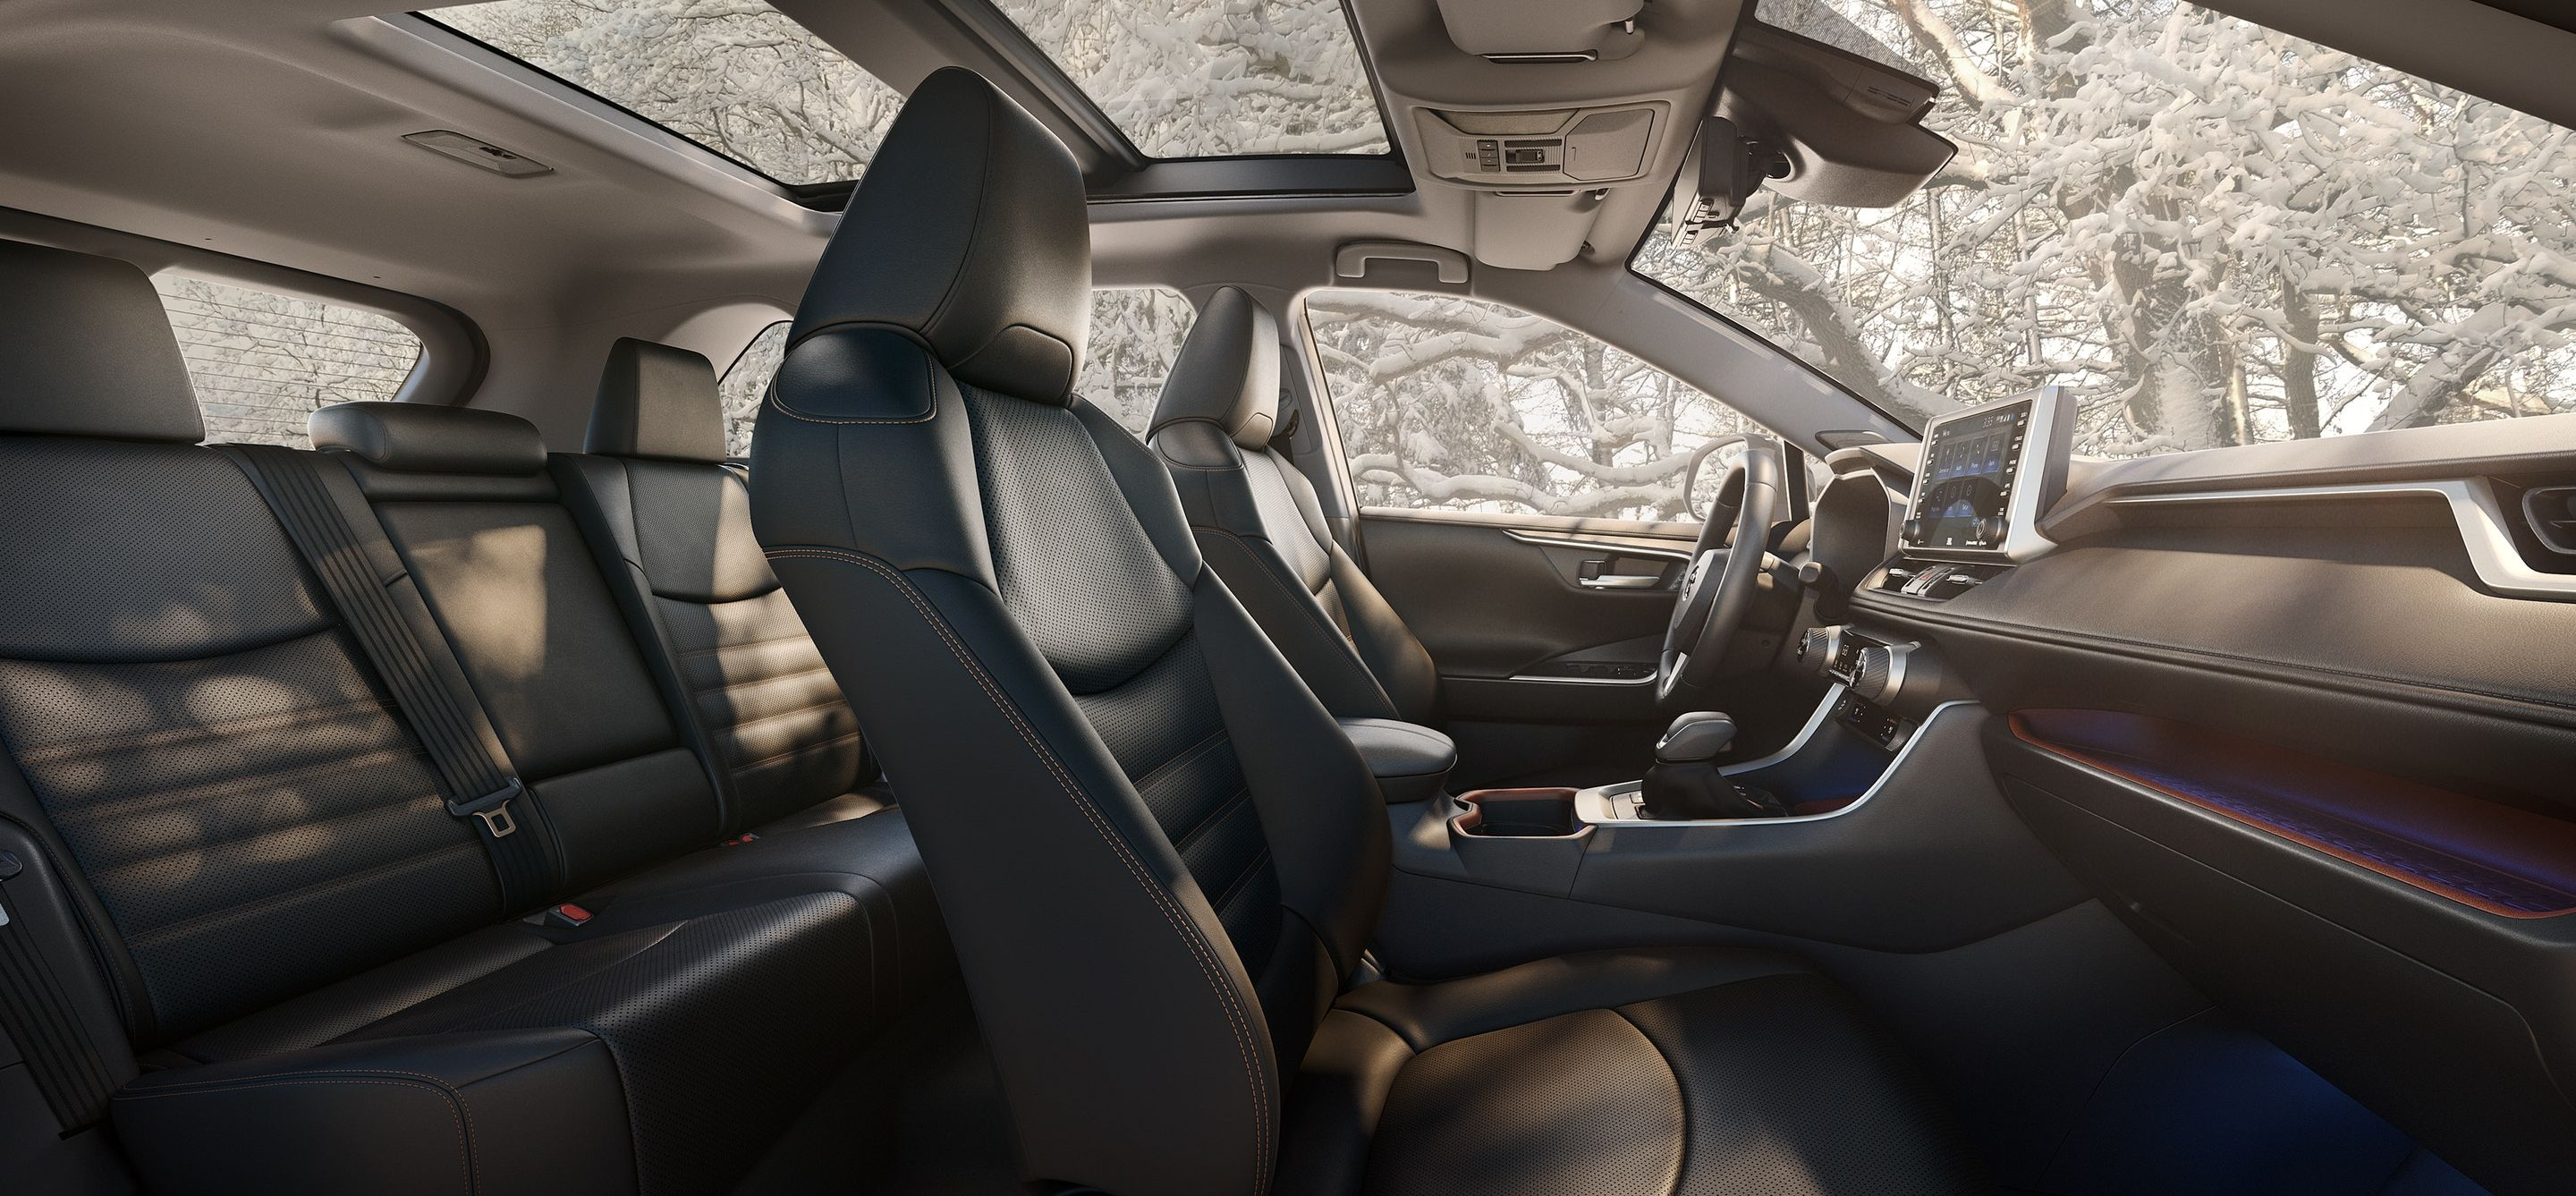 The Expansive Cabin of the 2019 Toyota RAV4